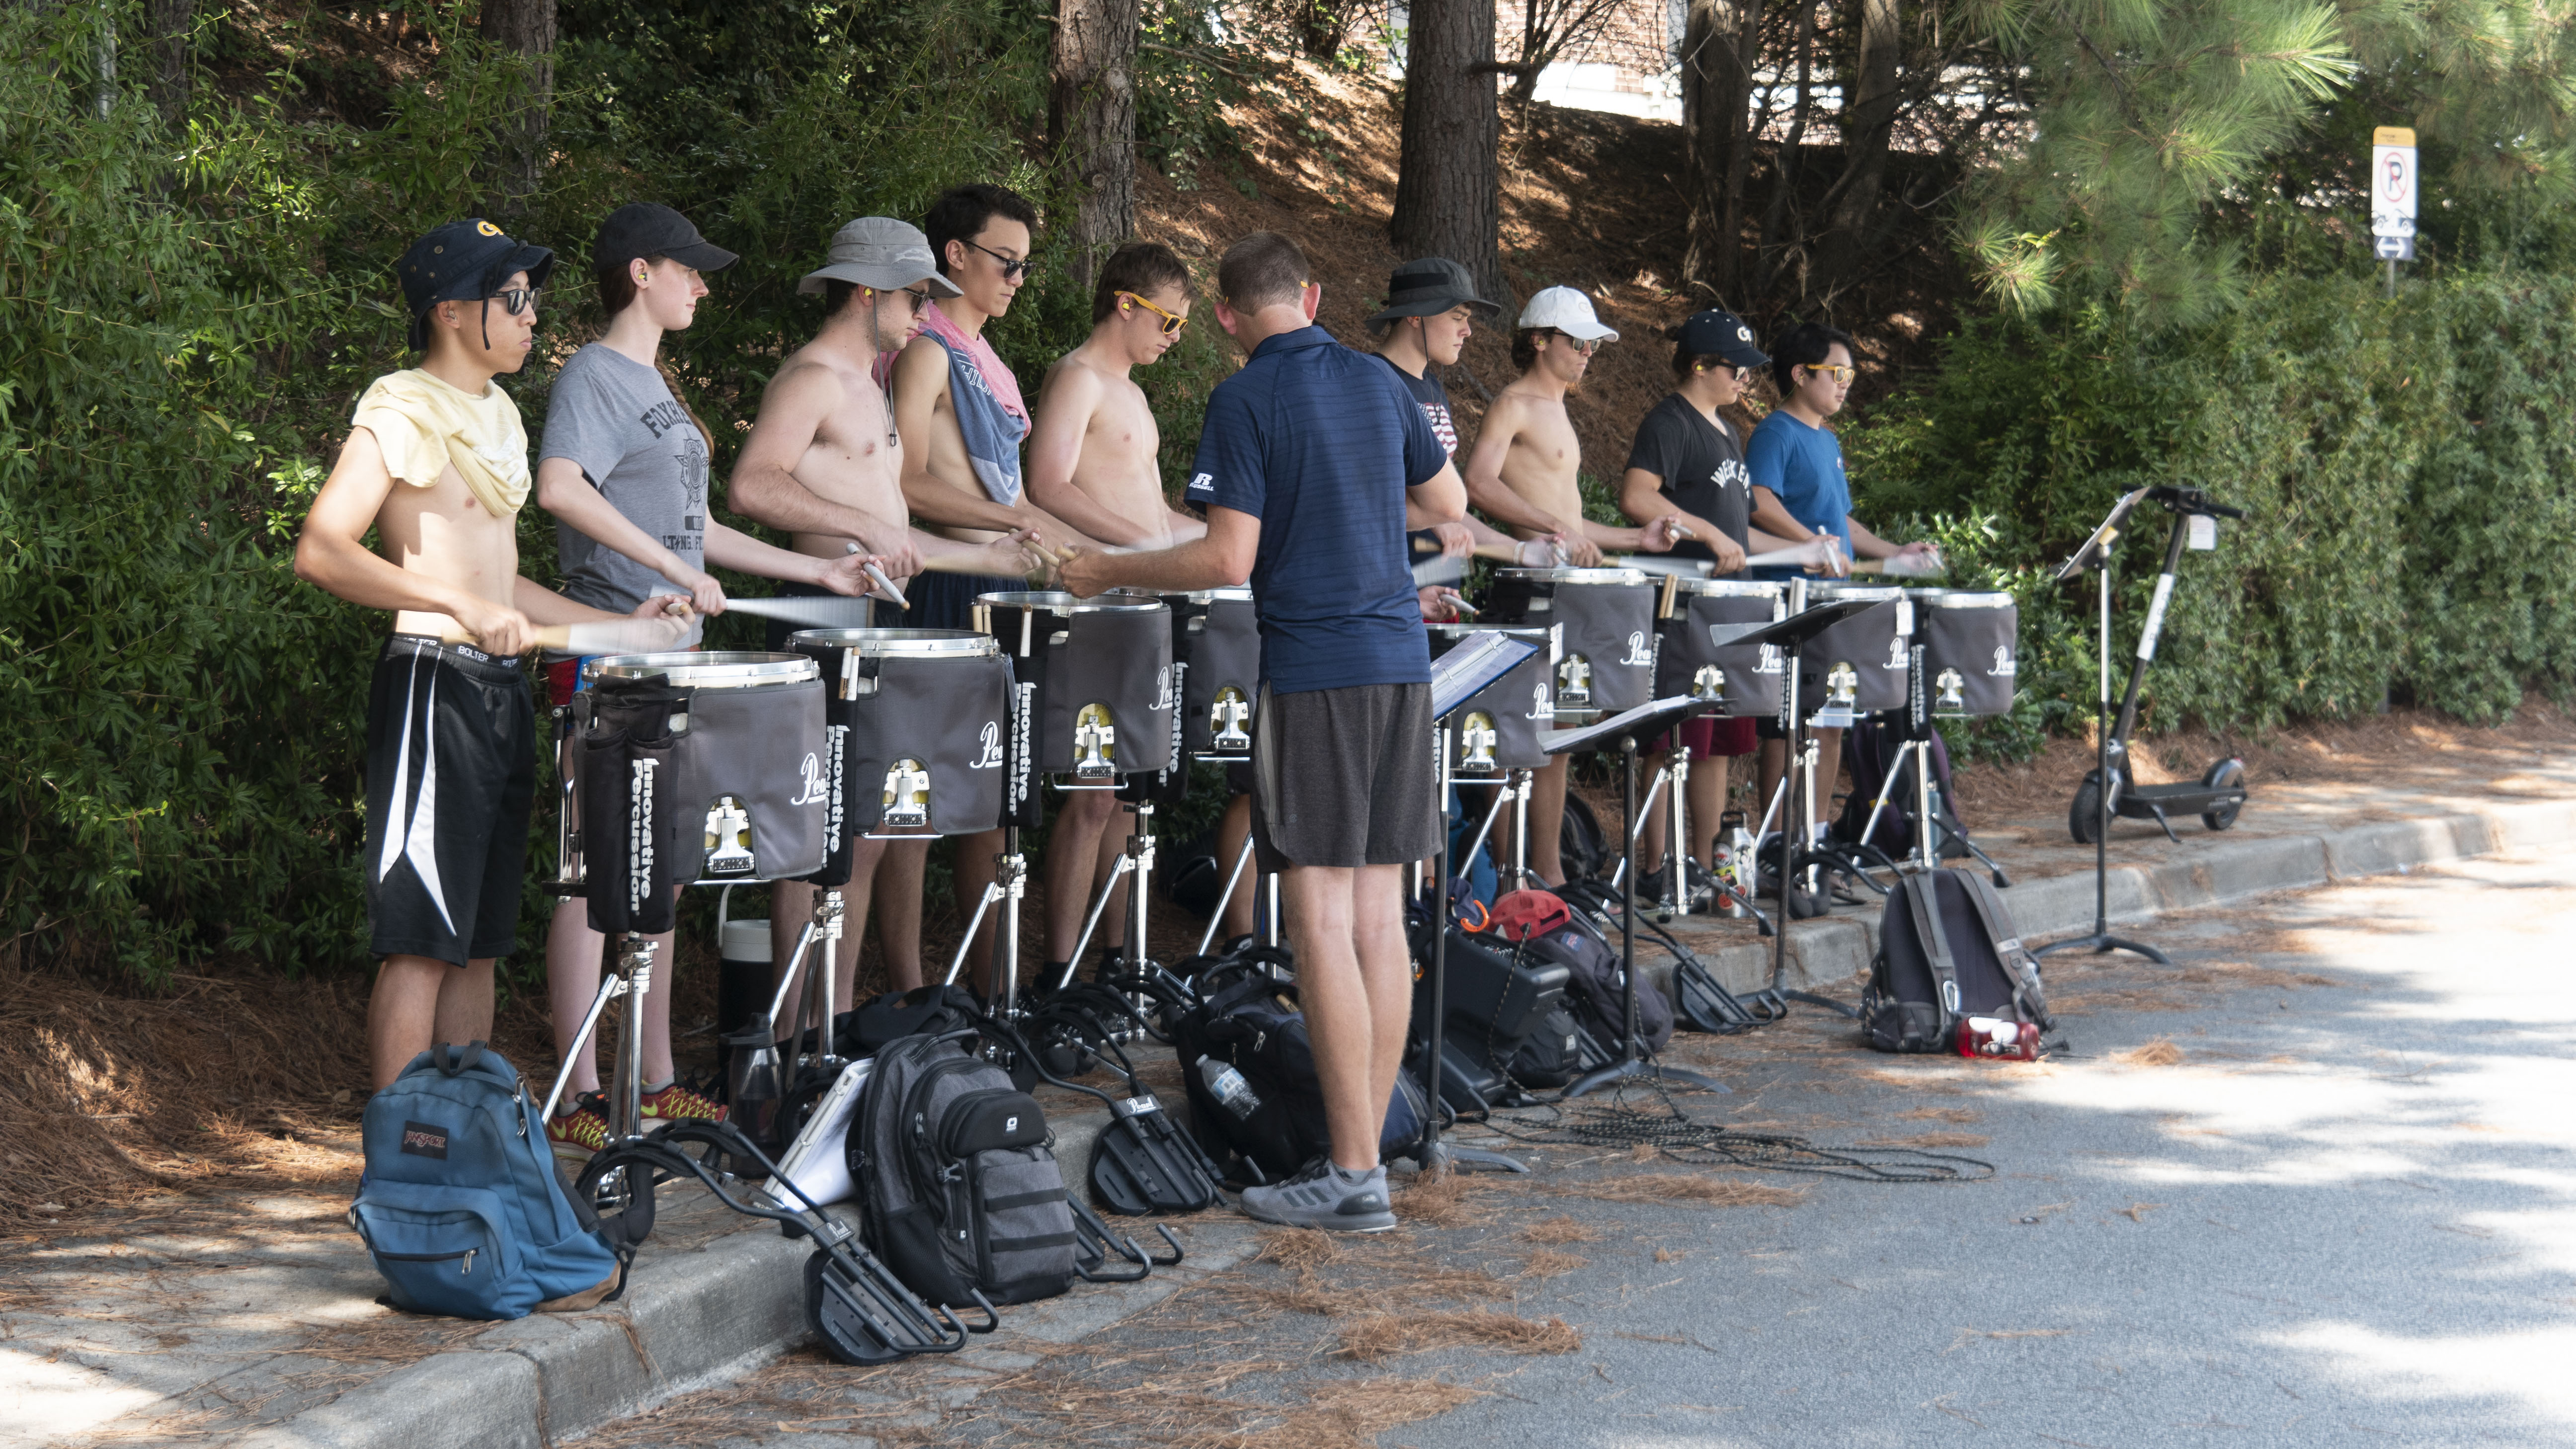 Members of the drumline practicing at camp.